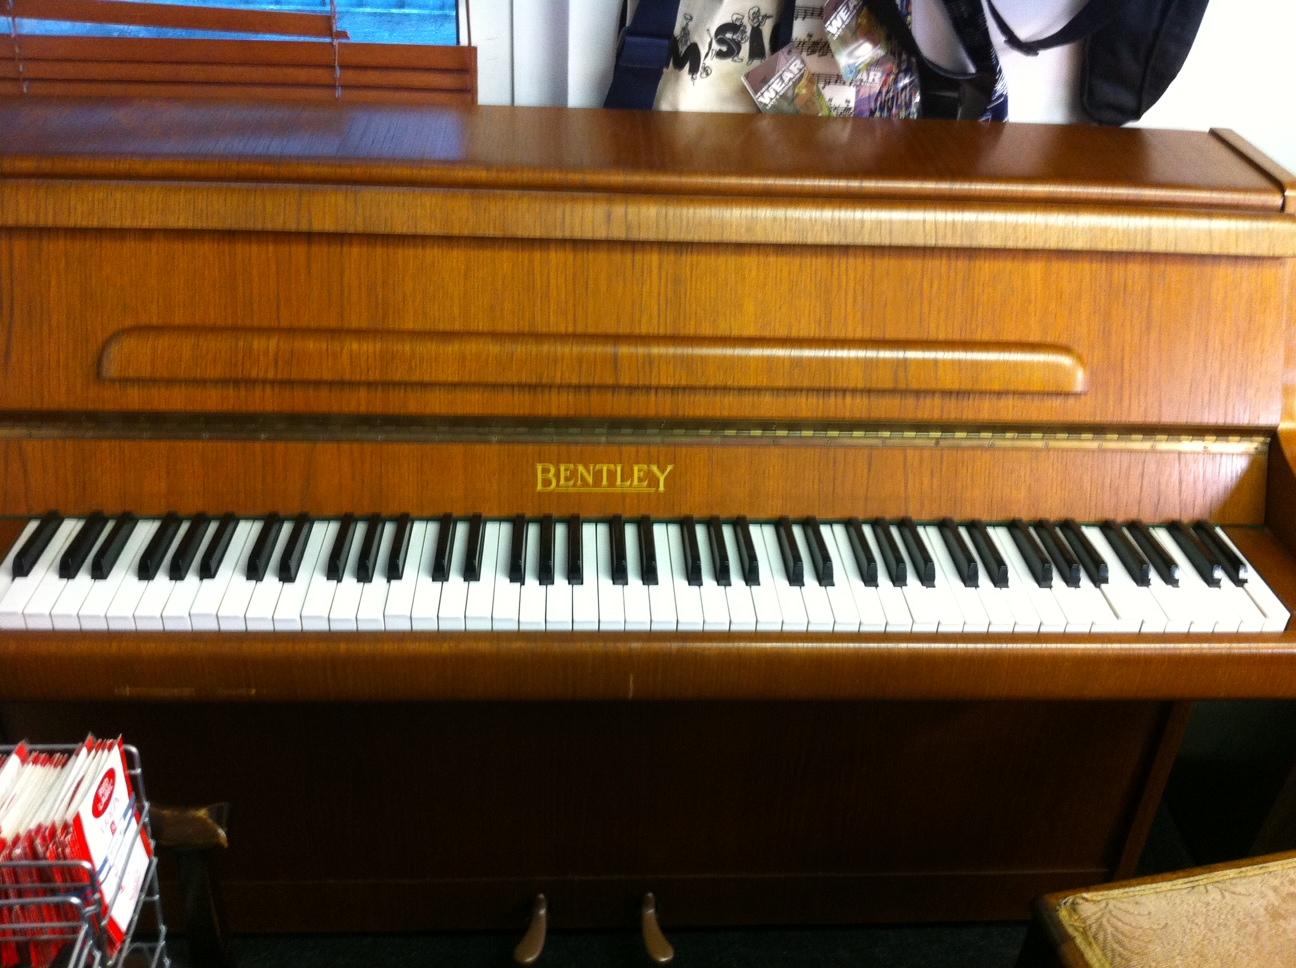 Bentley Piano Mahogany